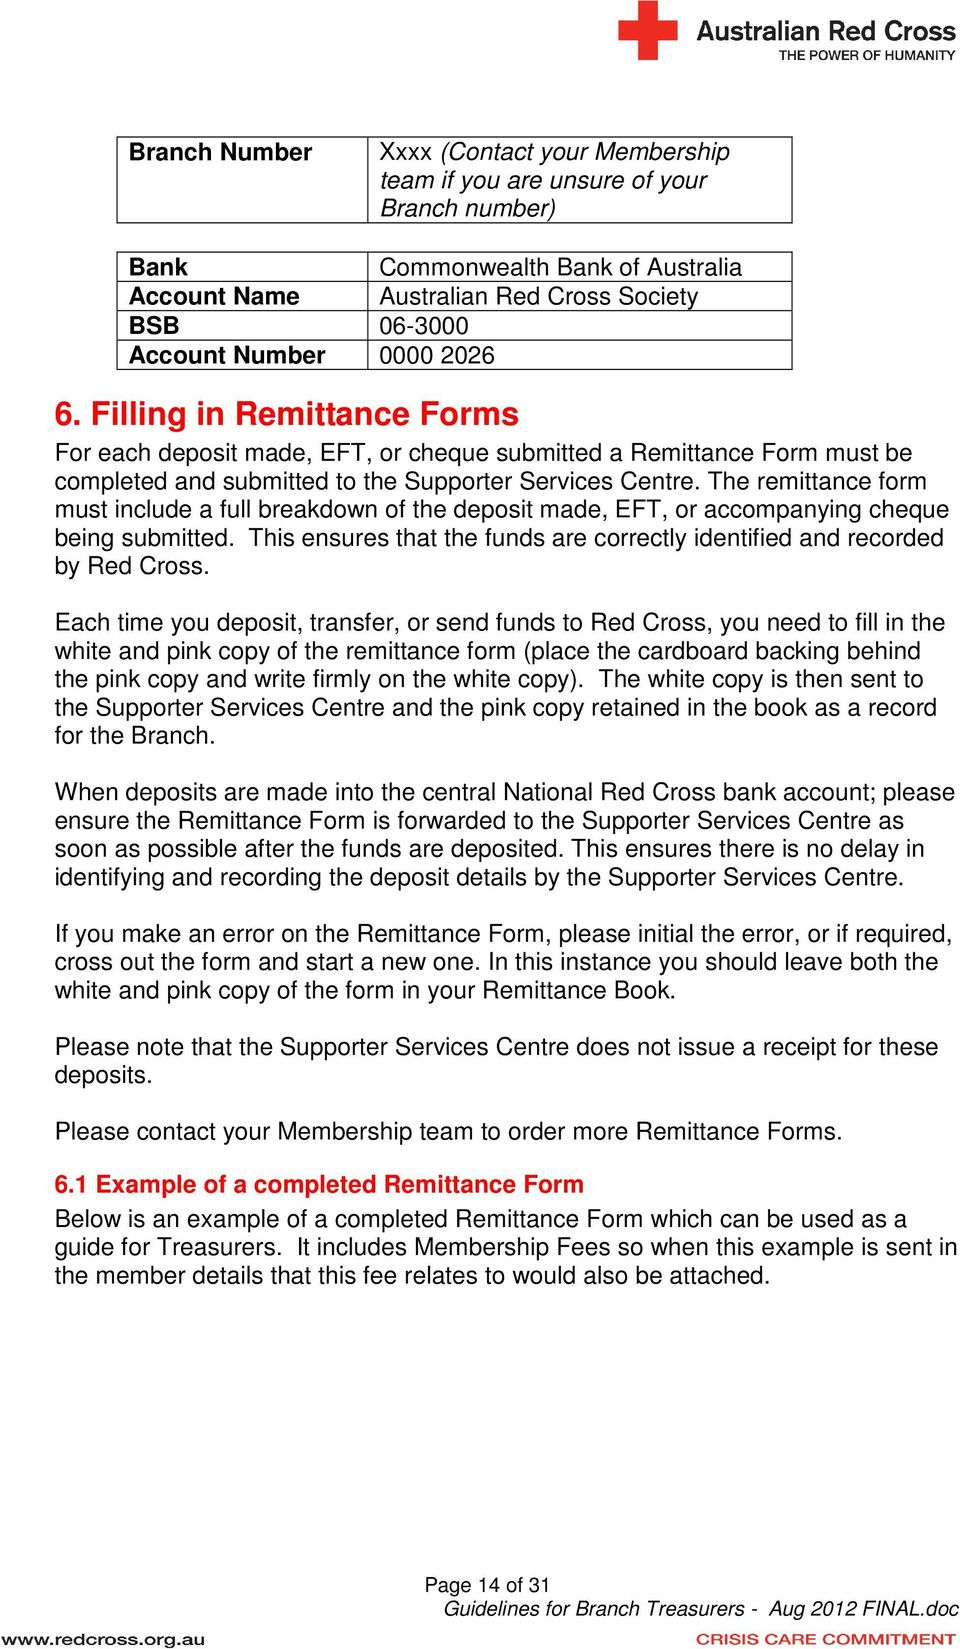 The remittance form must include a full breakdown of the deposit made, EFT, or accompanying cheque being submitted. This ensures that the funds are correctly identified and recorded by Red Cross.